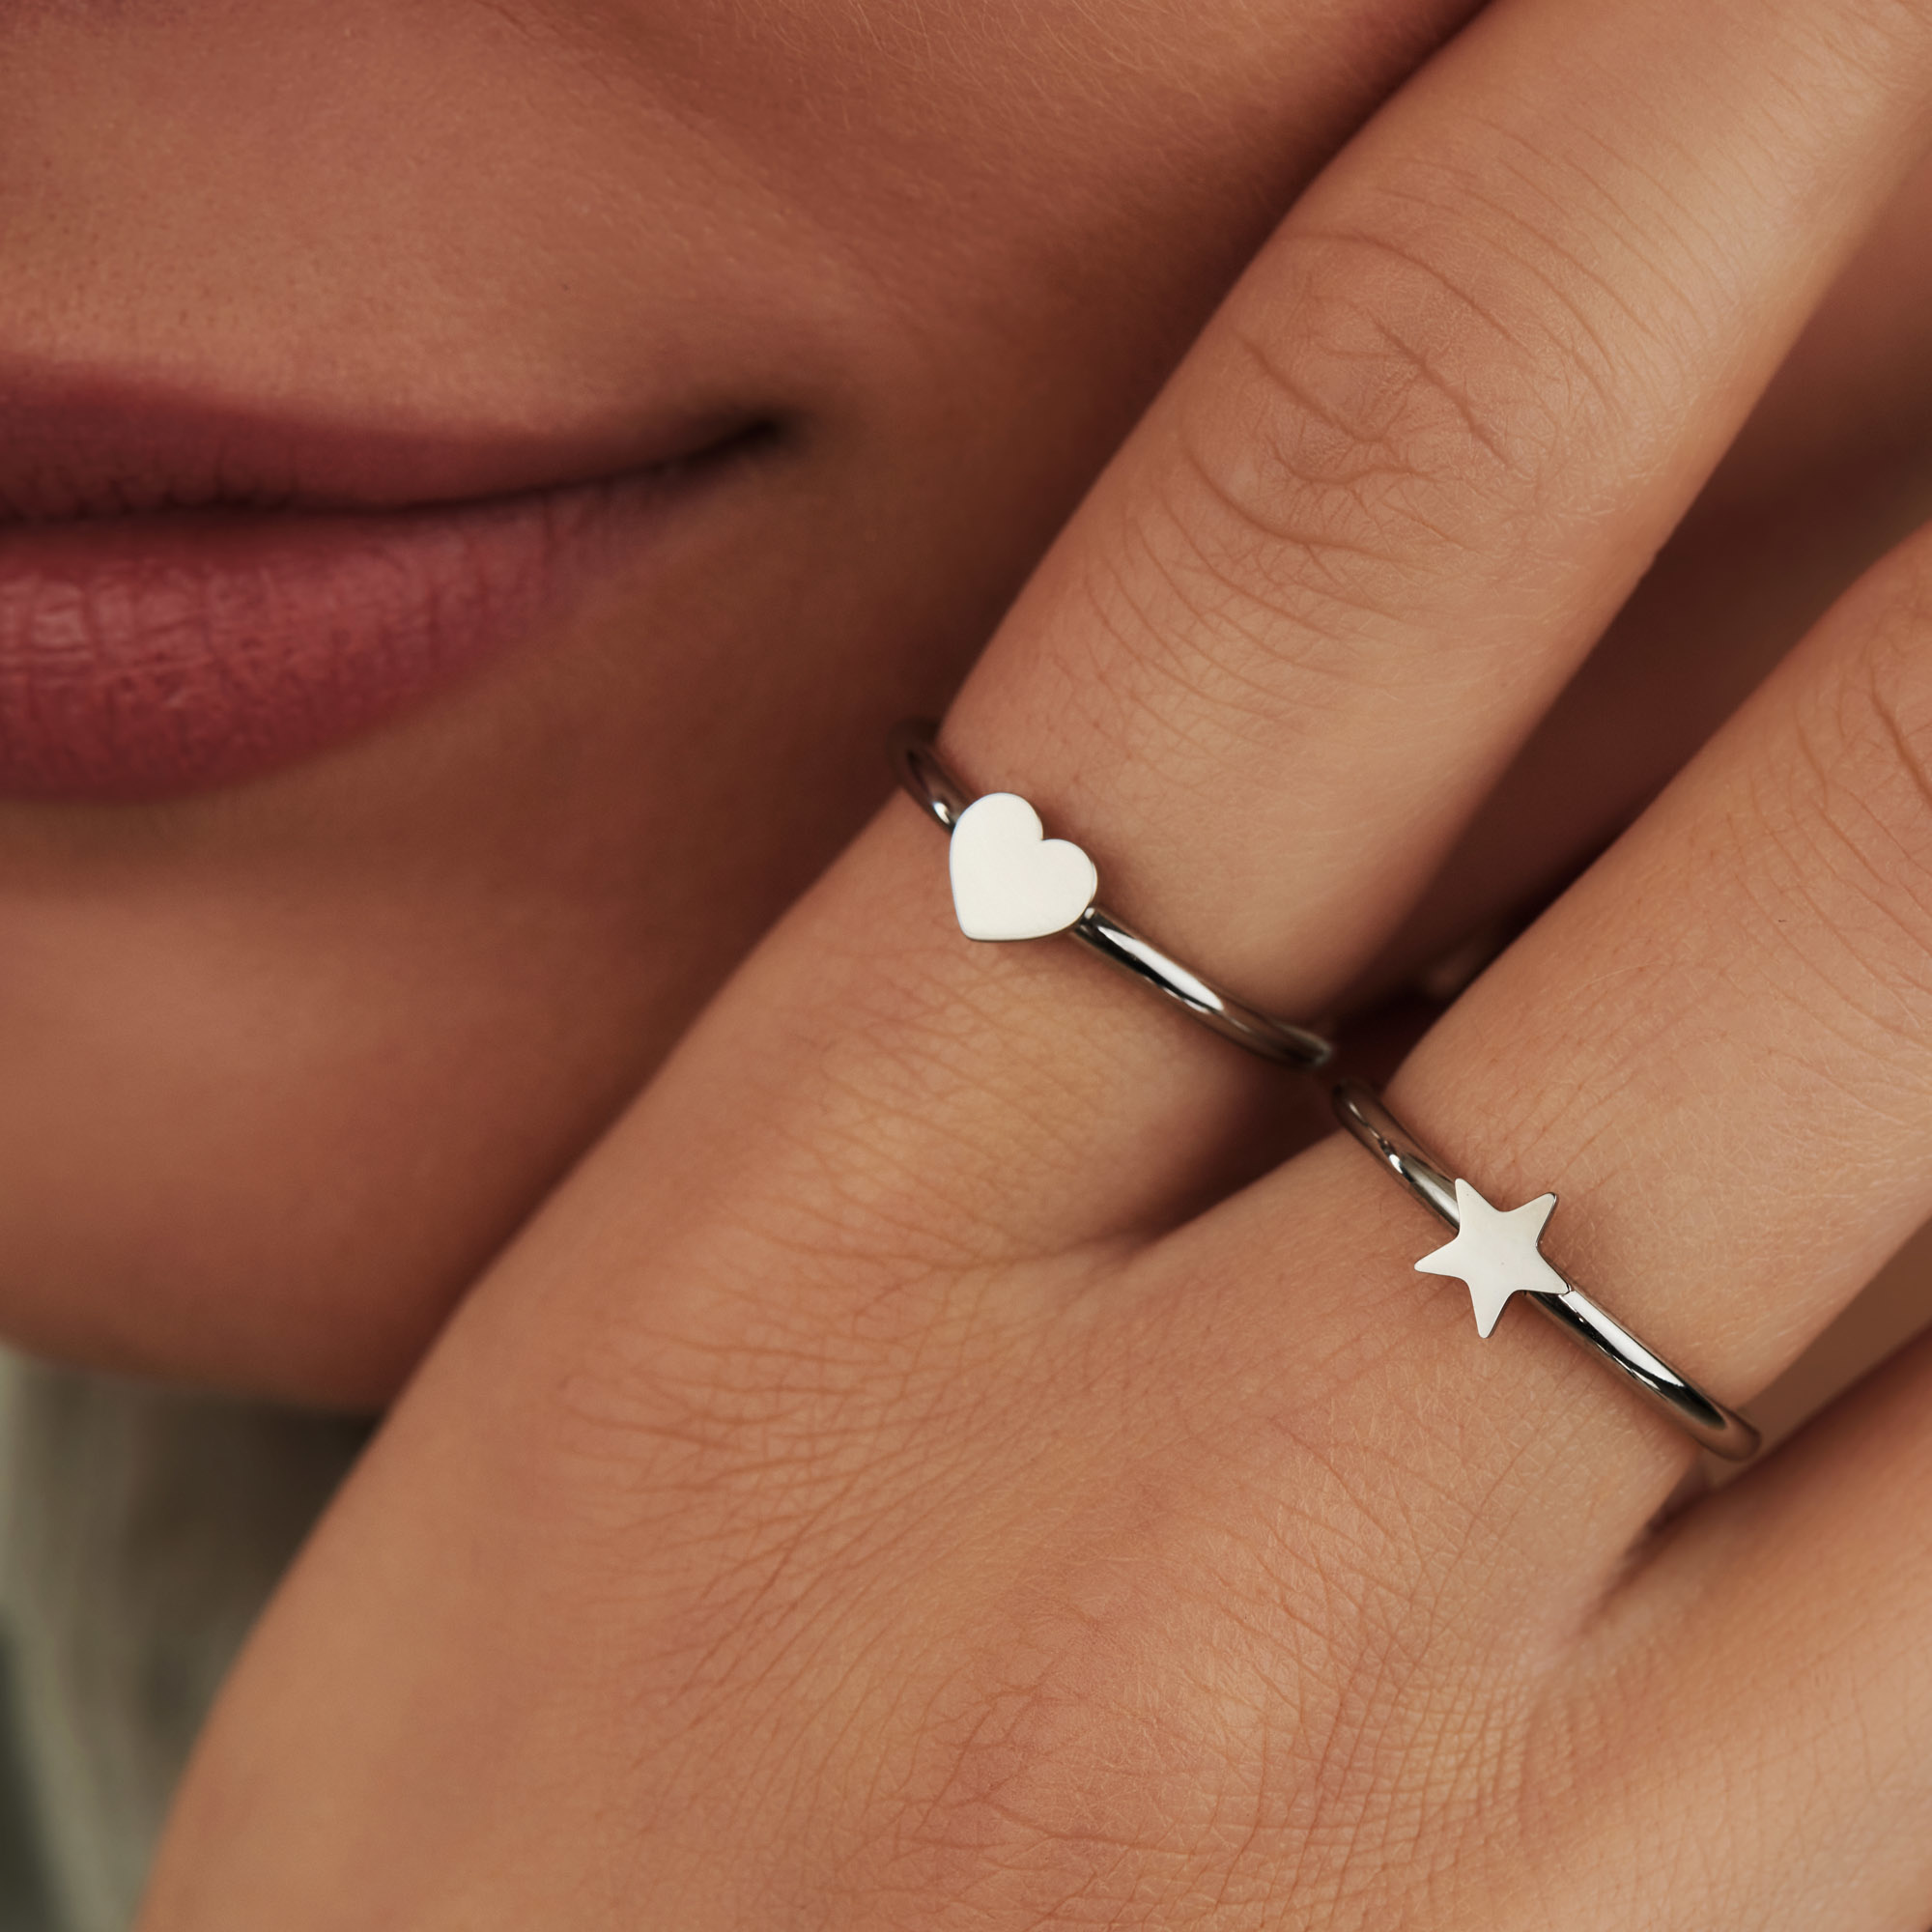 May Sparkle Forever Young Star zilverkleurige ring met sterretje